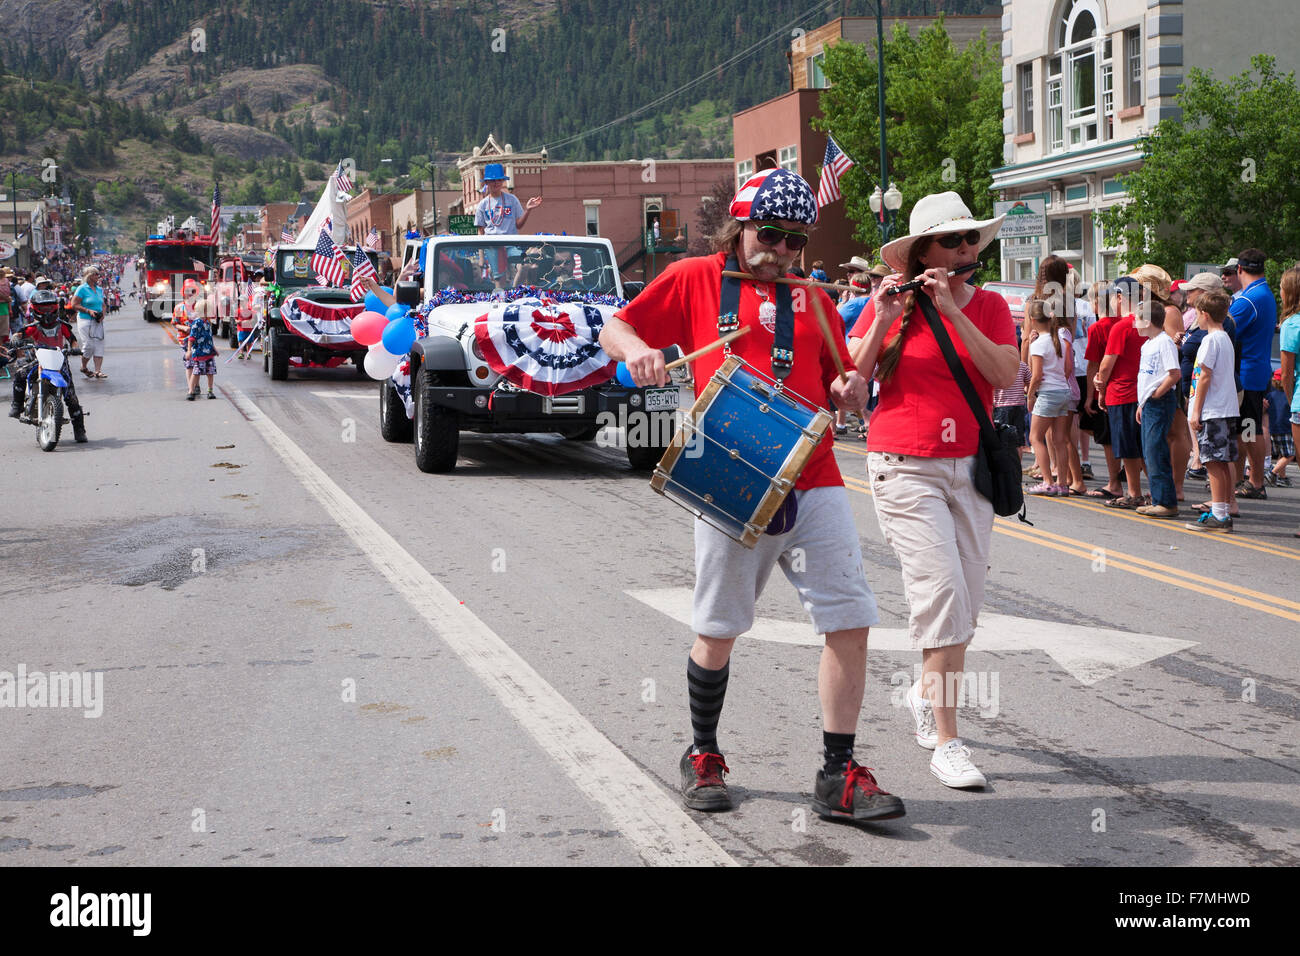 Uncle Sam marches in July 4 Independence Day Parade, Ouray, Colorado - Stock Image